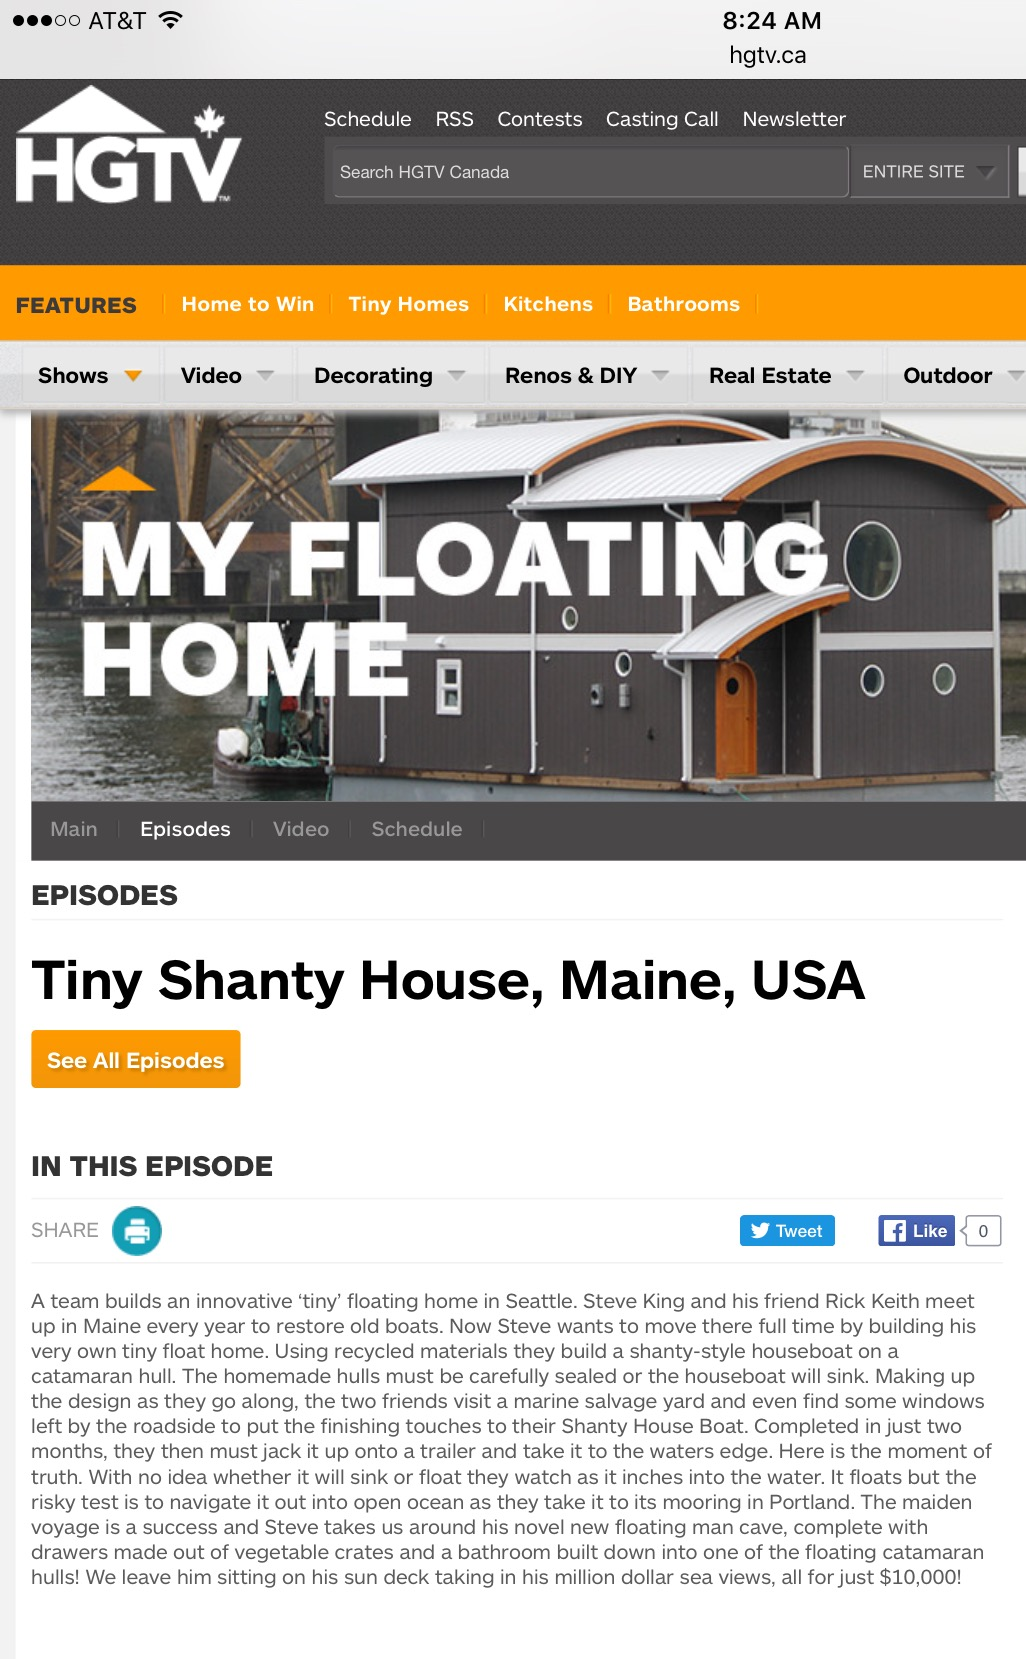 Tiny Shanty House on hgtv.ca first showing of our episode in Canada , US on FYI in June 25?